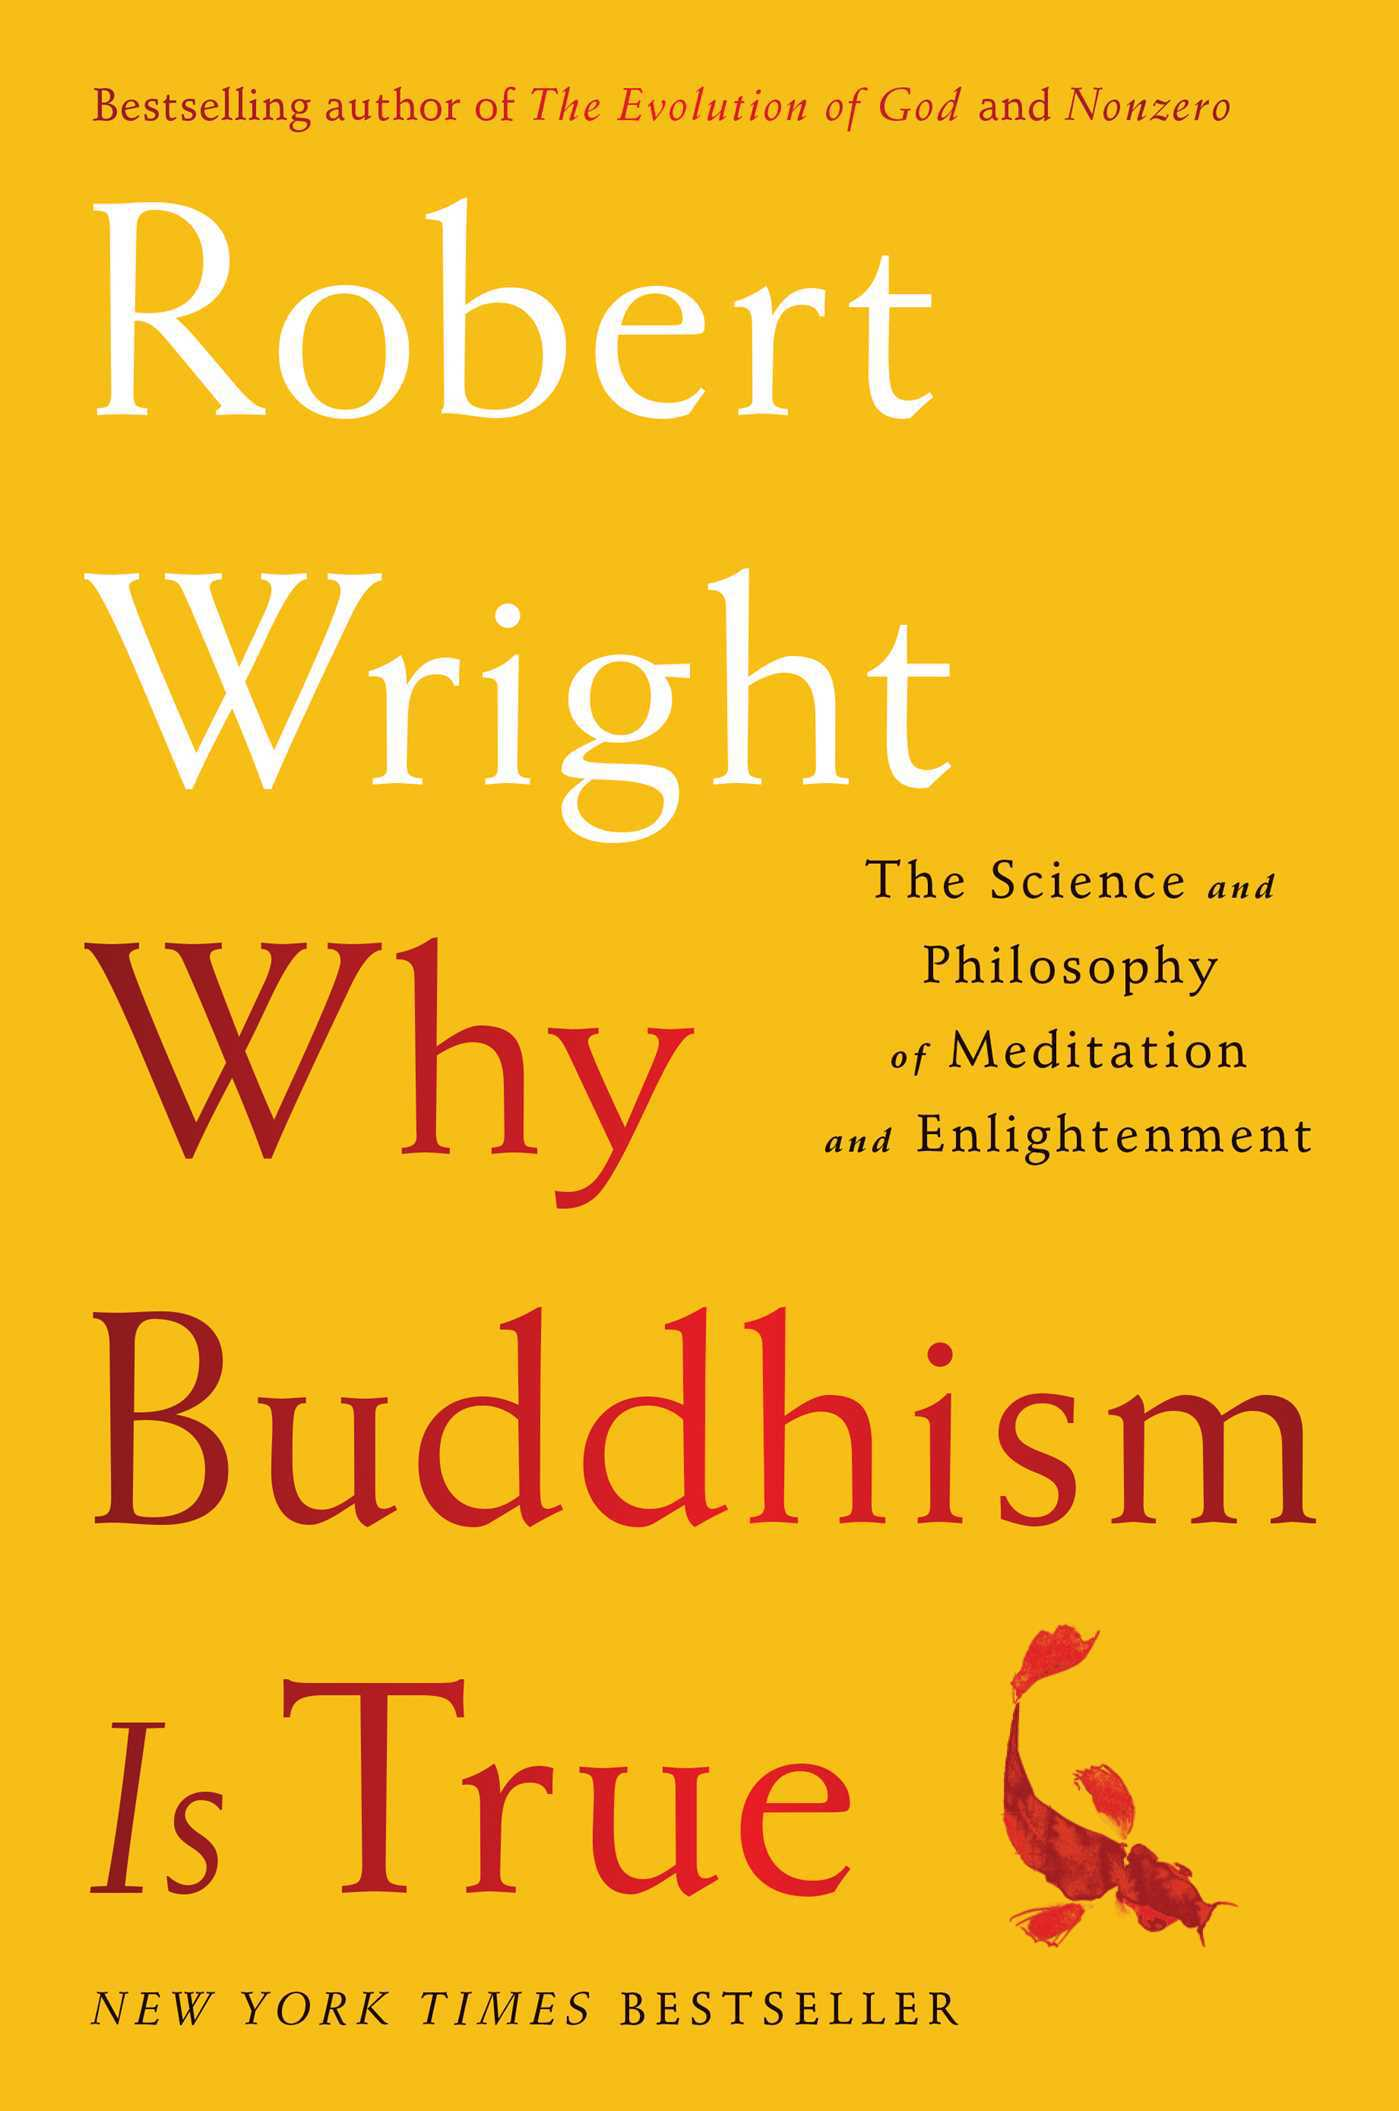 Why Buddhism is True The Science and Philosophy of Meditation and Enlightenment by Robert Wright